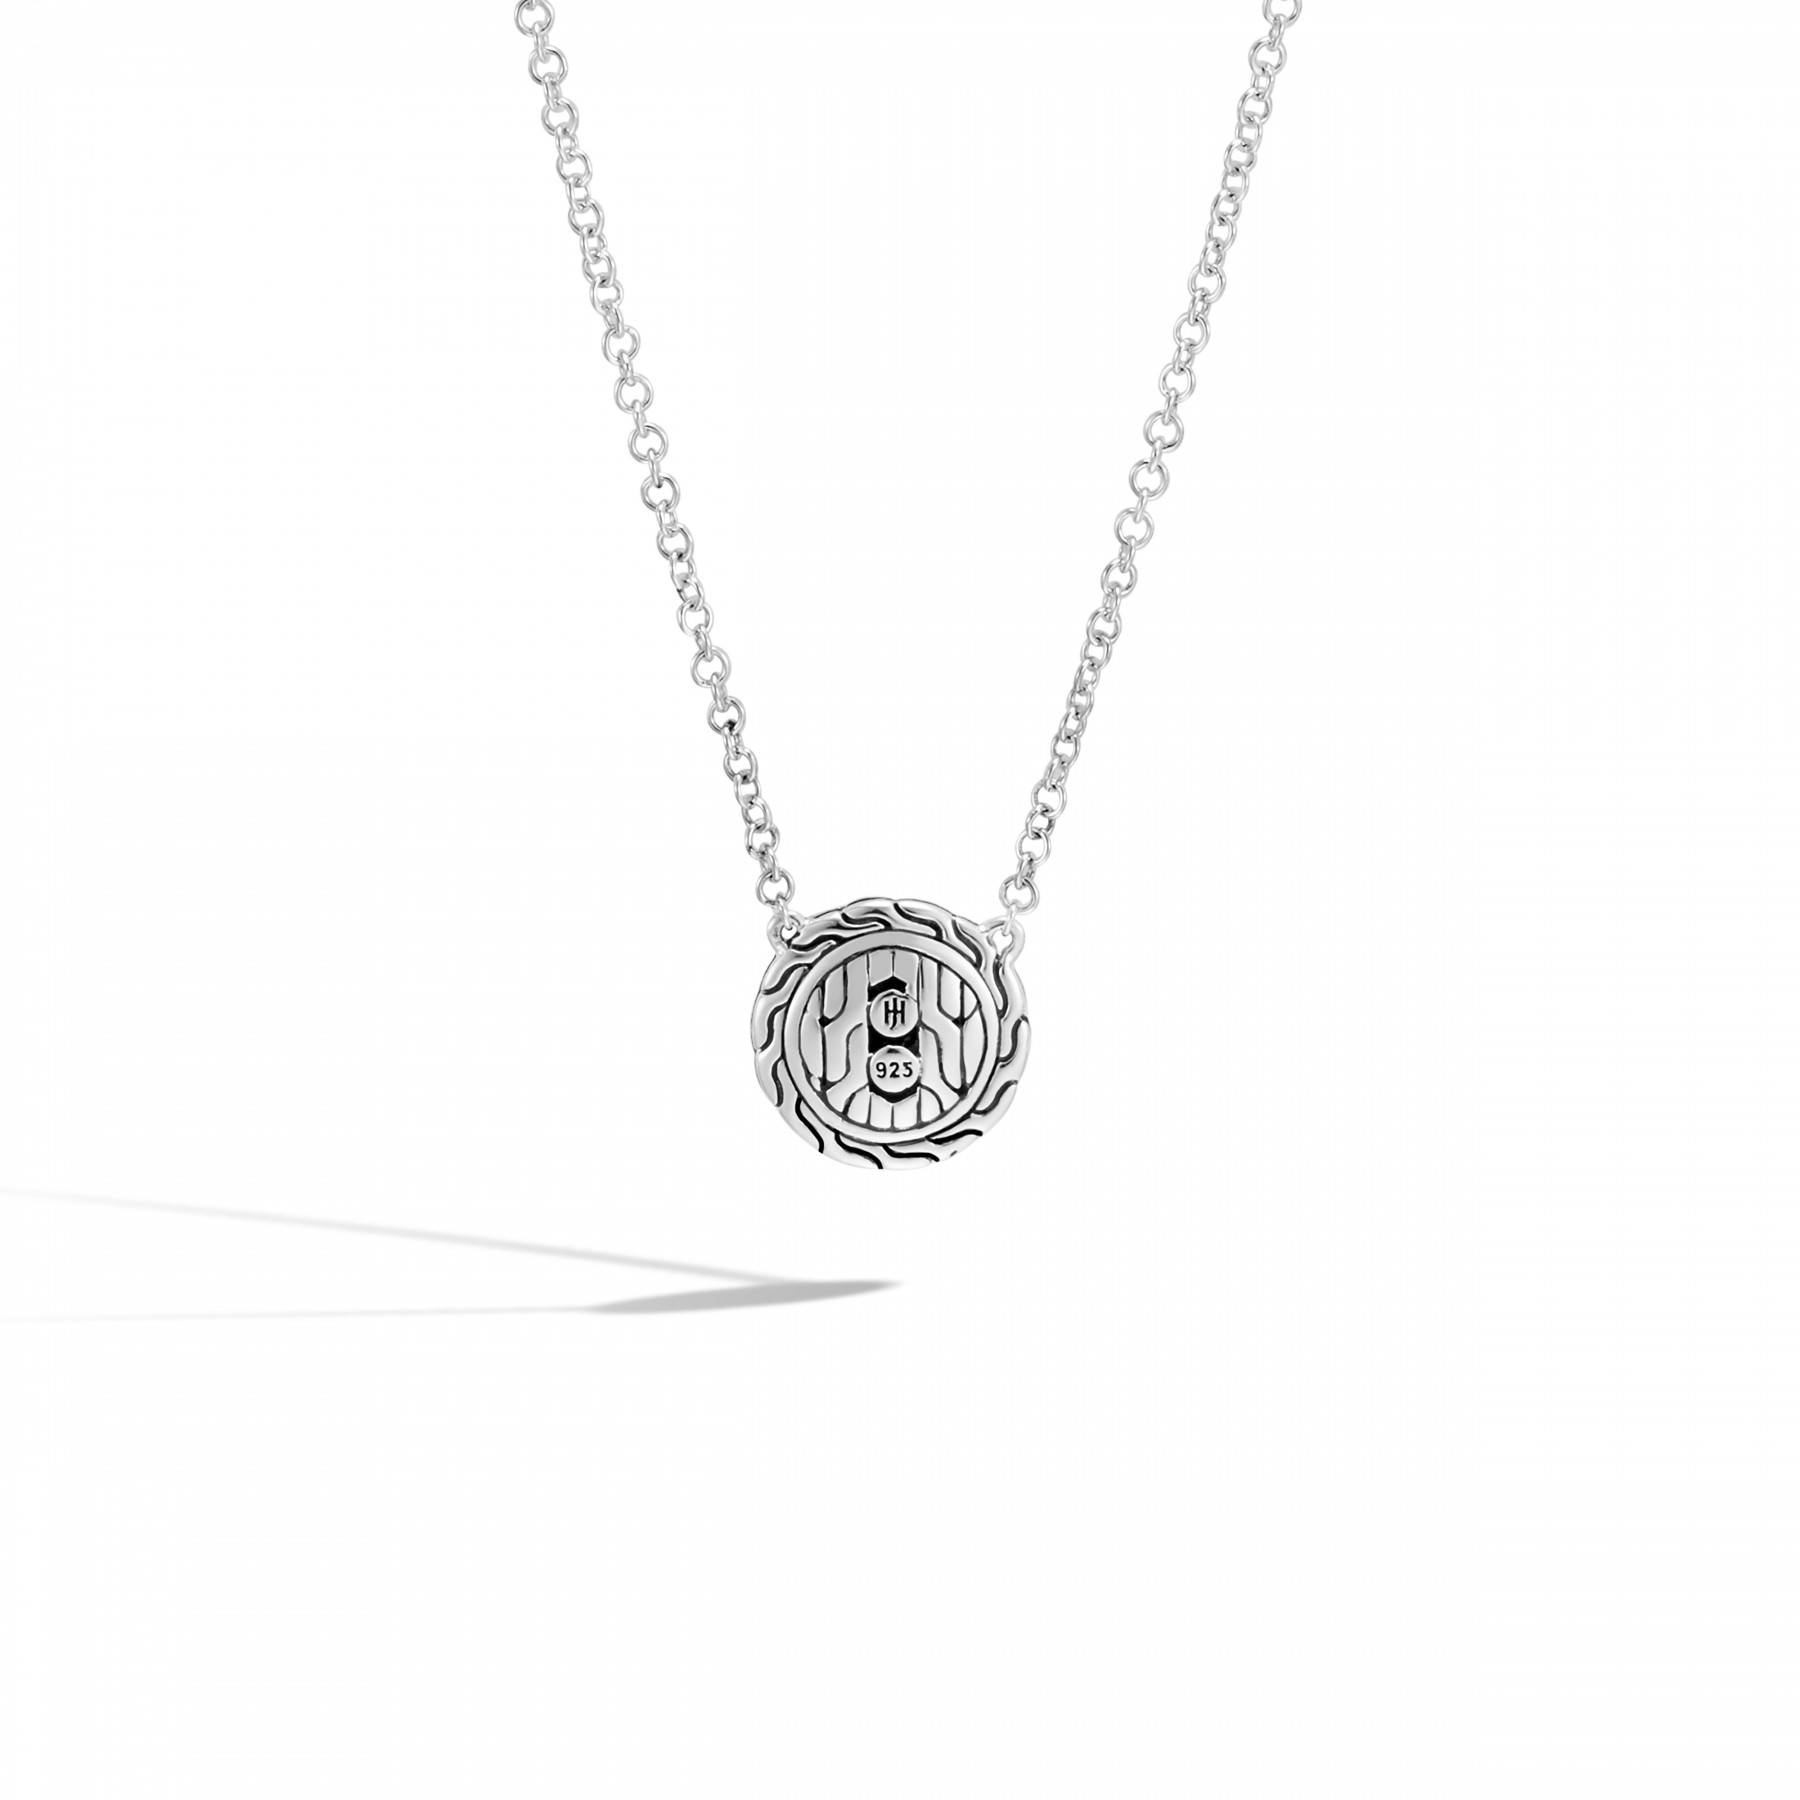 John Hardy Classic Chain Black Sapphire Round Necklace back view